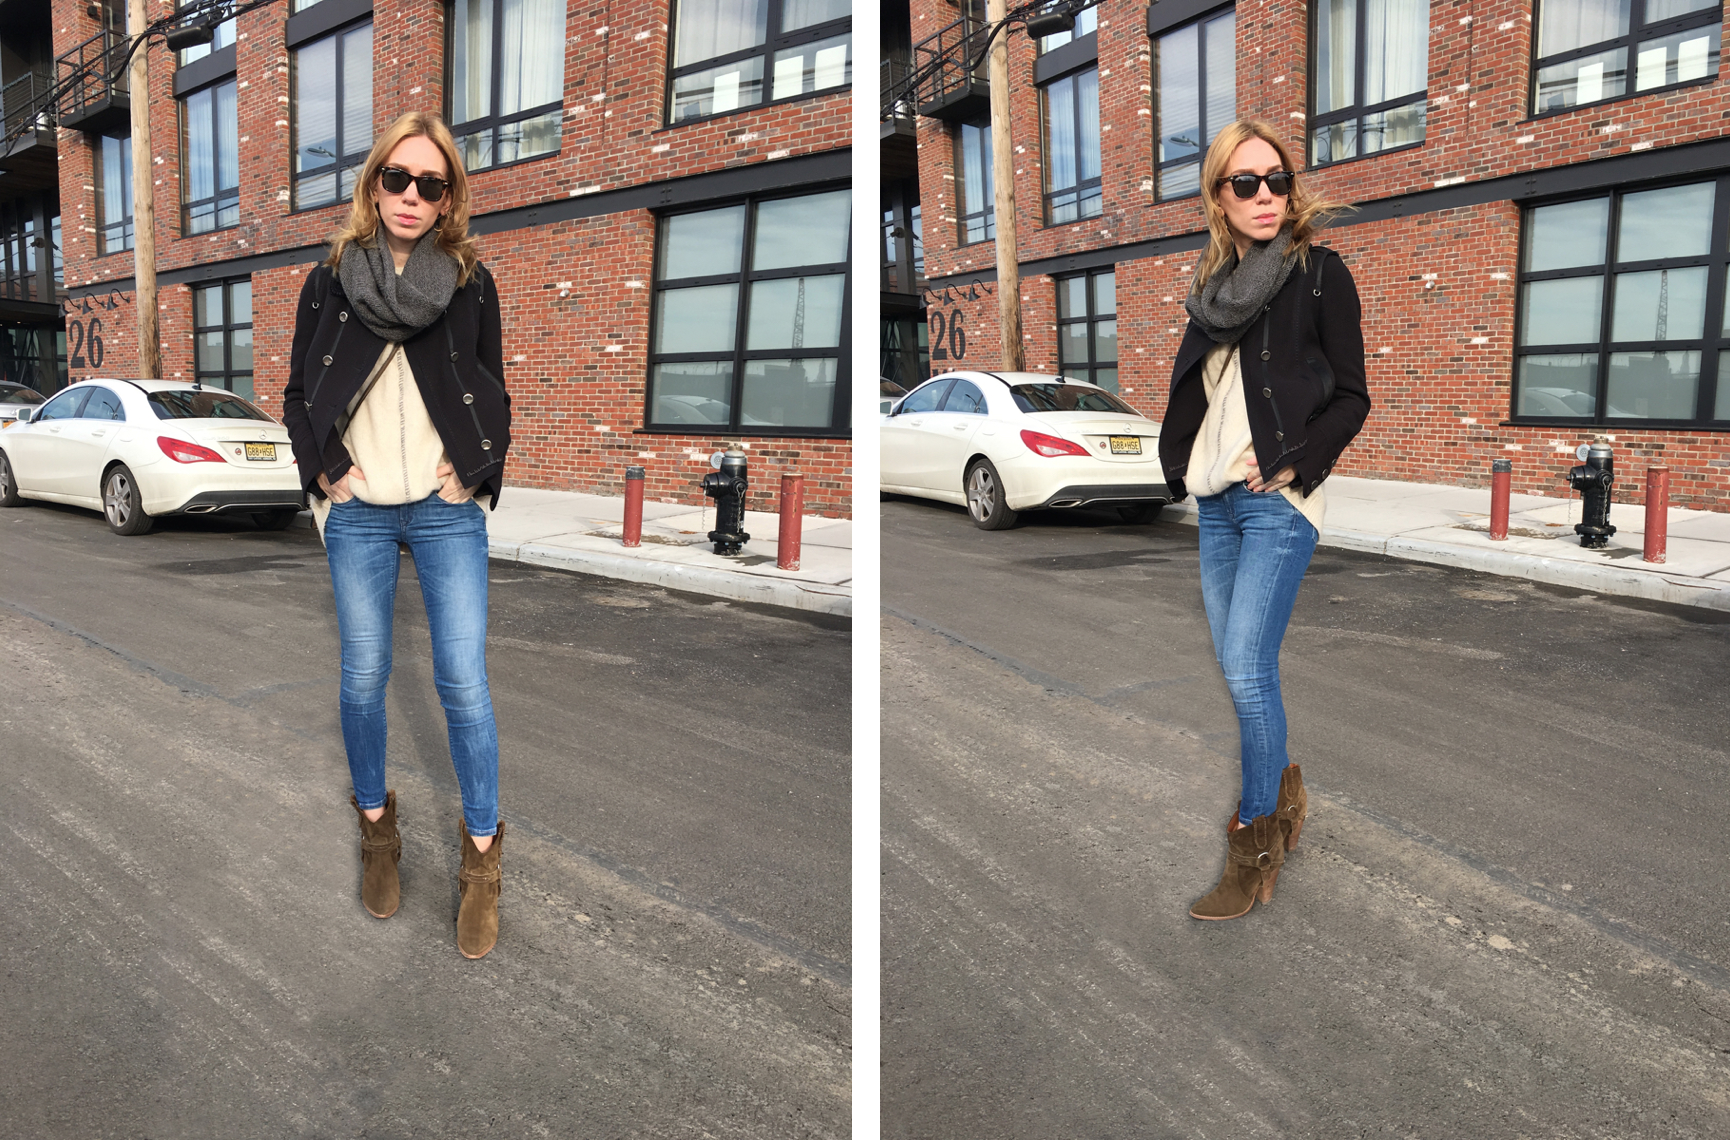 Two photos of woman posing in jeans and navy jacket